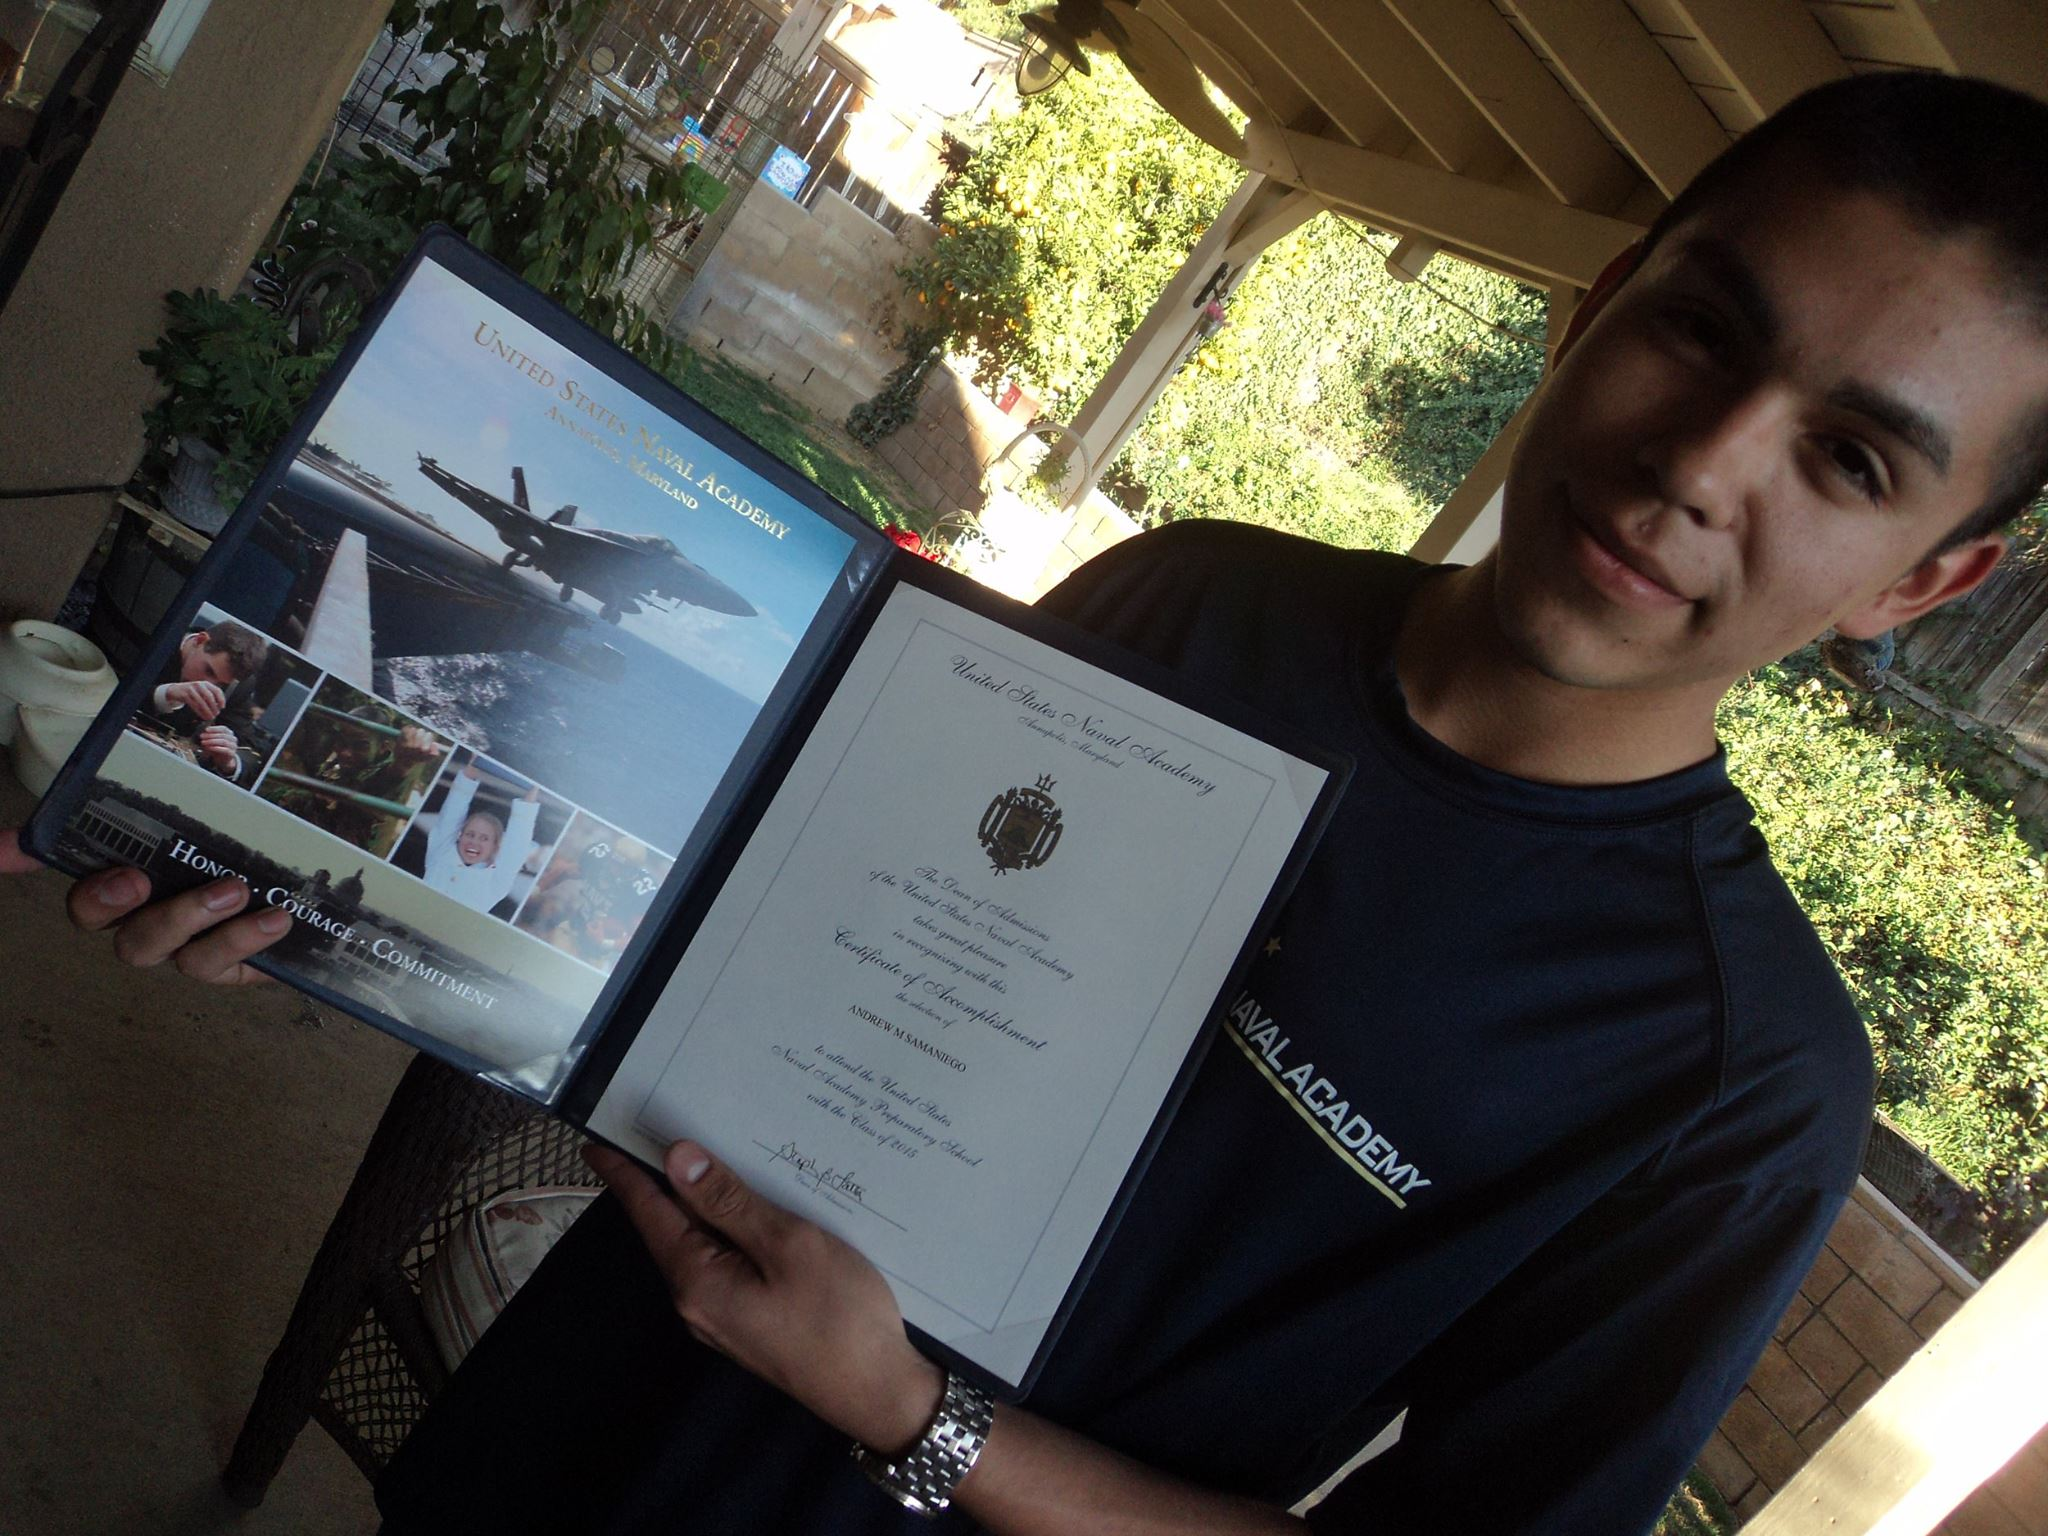 Andrew is leaving for Naval Academy Prep School in July